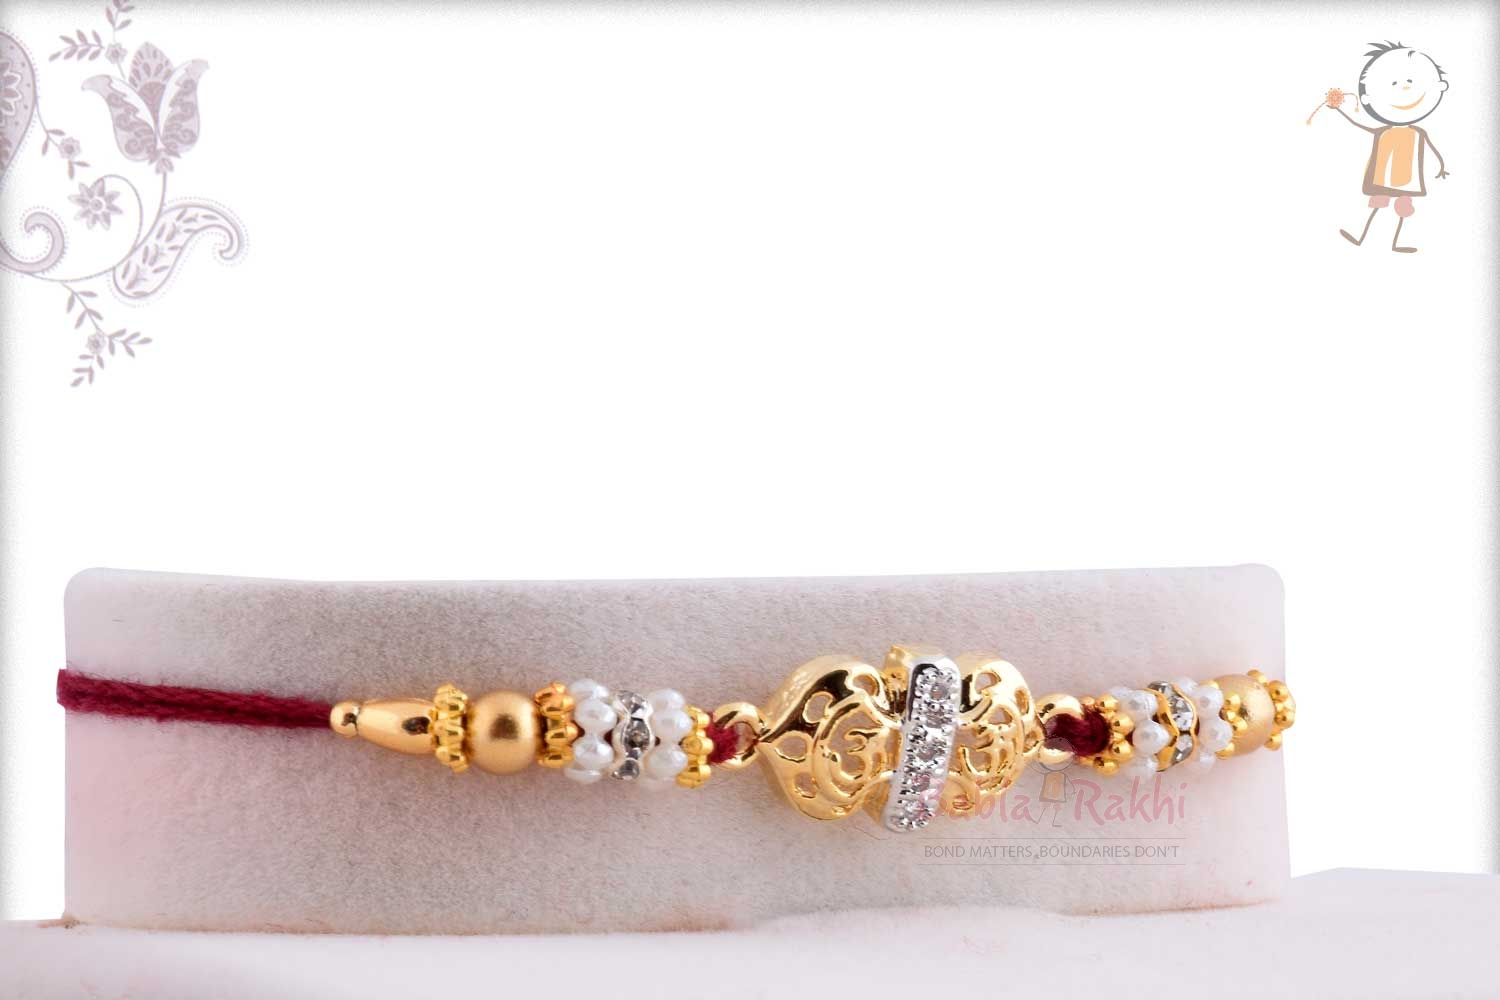 Exclusive Golden OM Rakhi with Pearl Rings 2